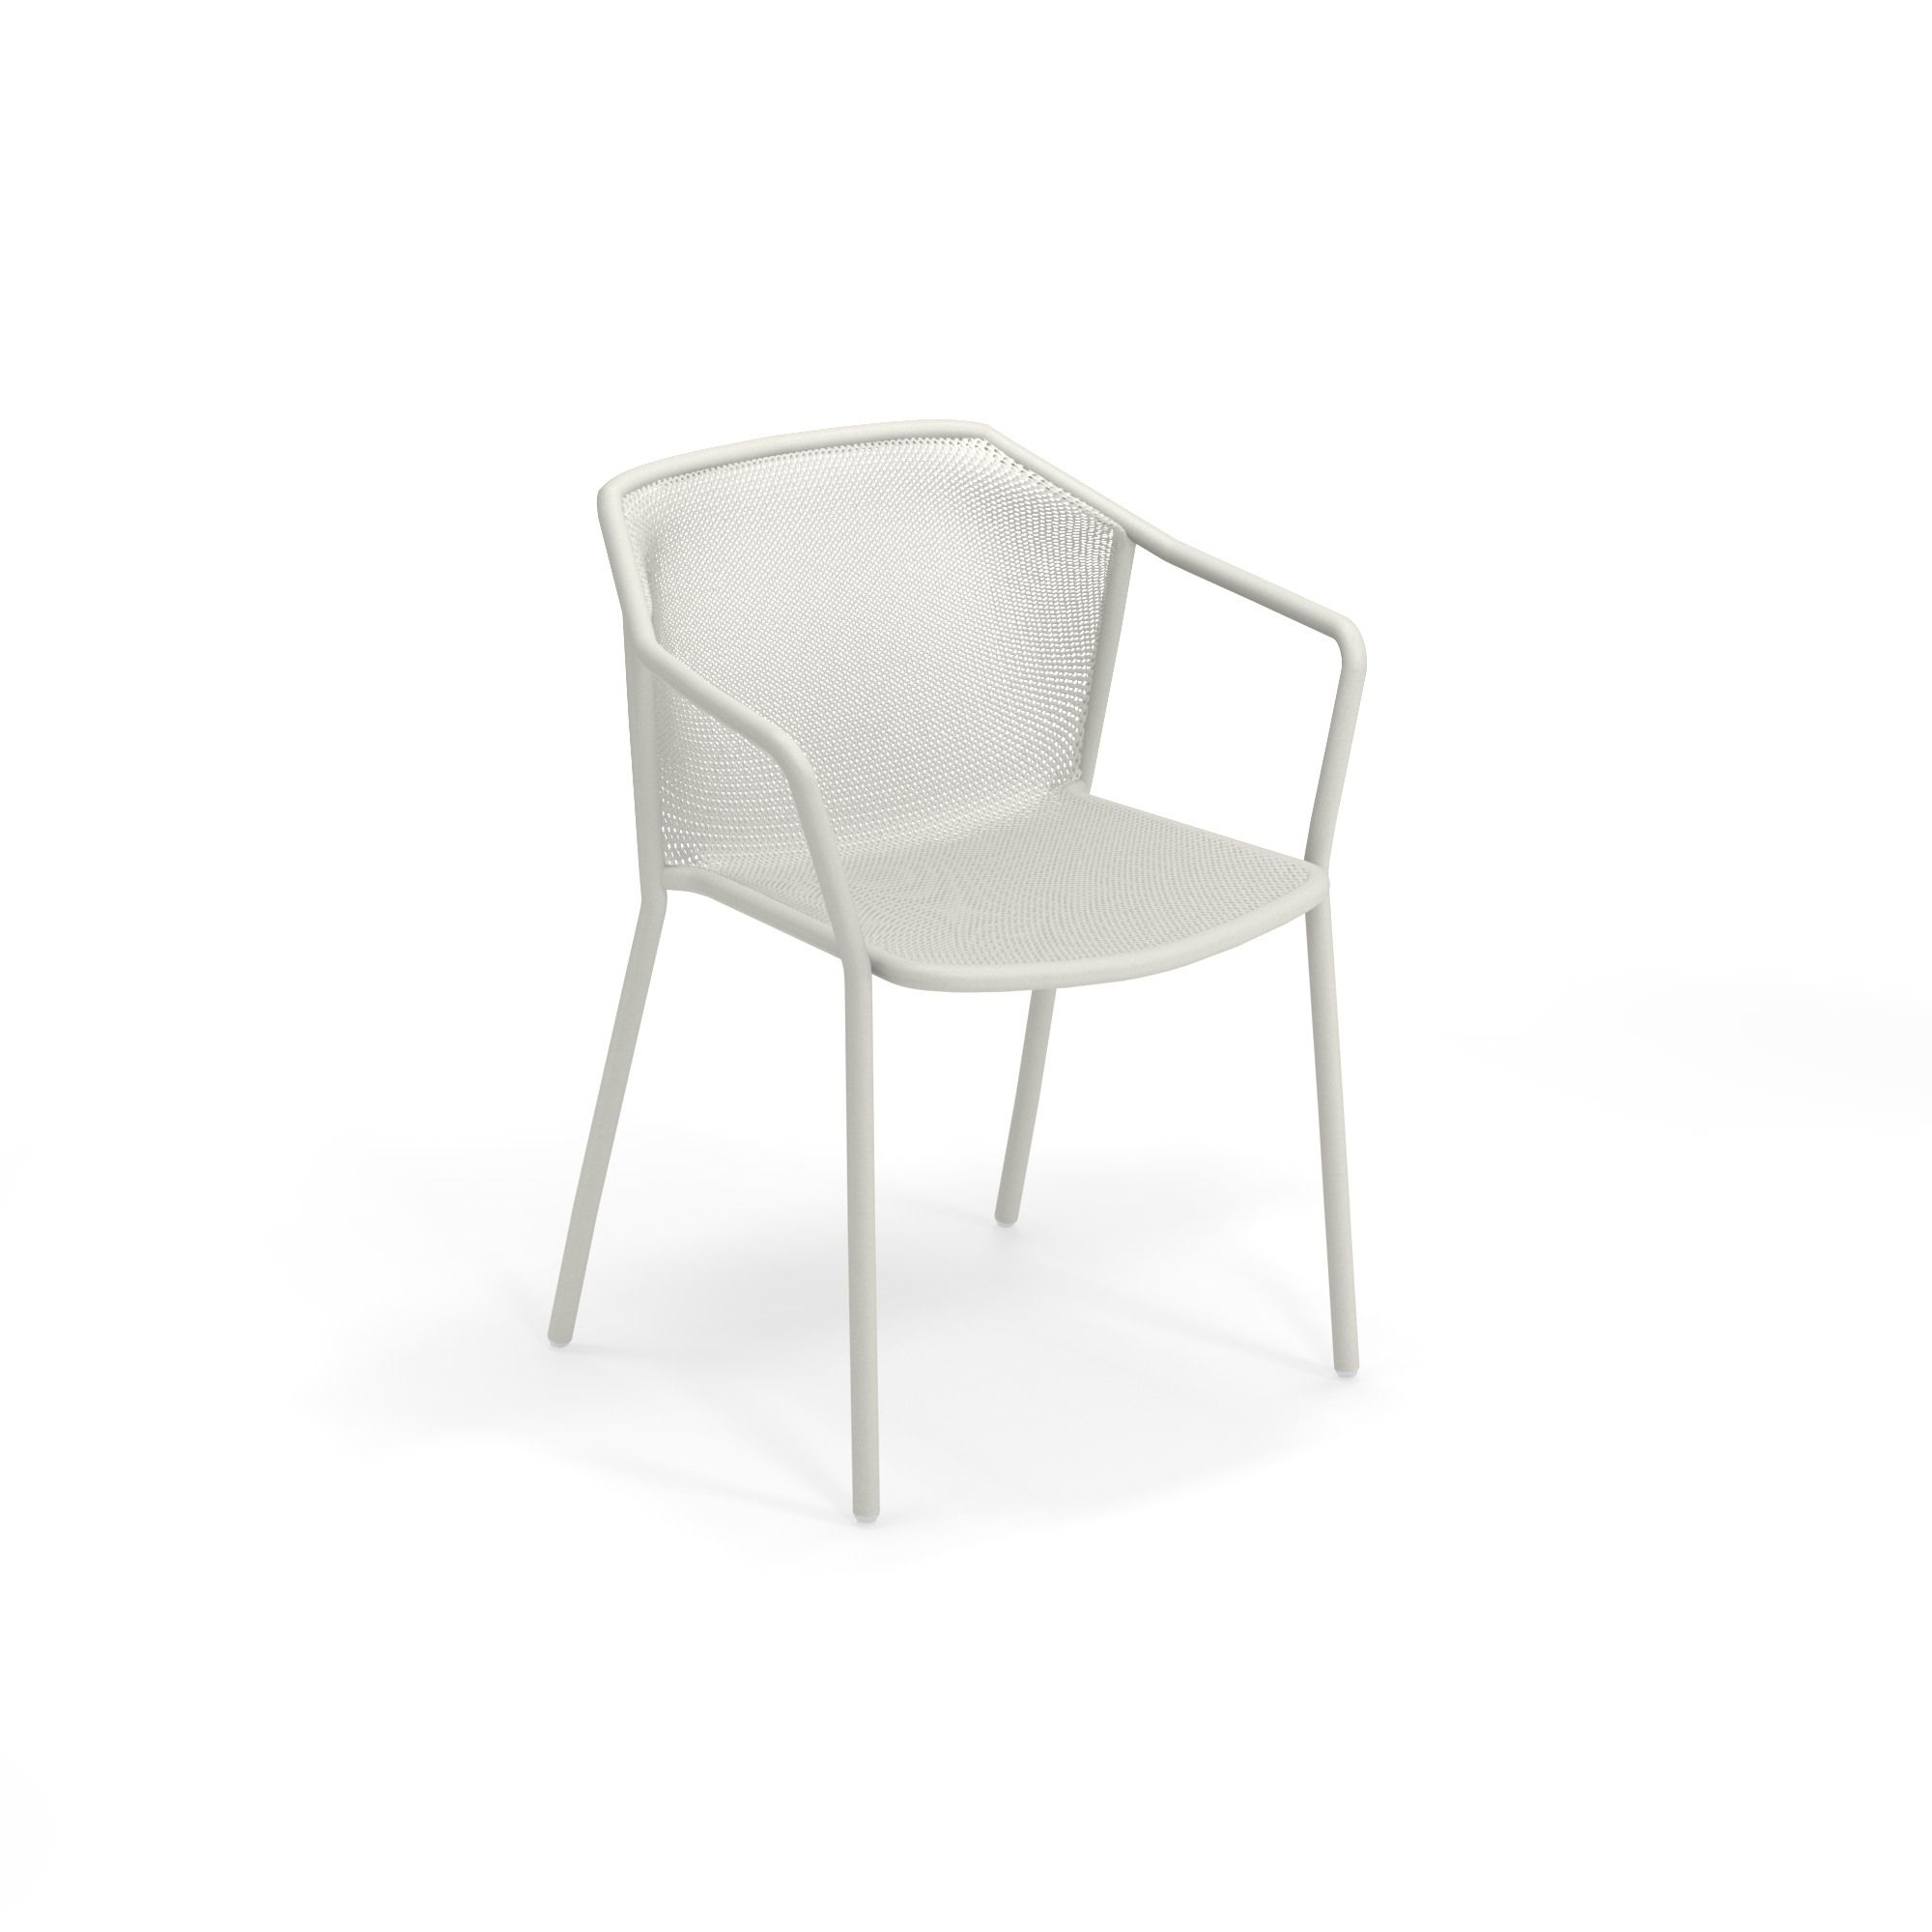 emuamericas, llc 522-23 chair, armchair, stacking, outdoor